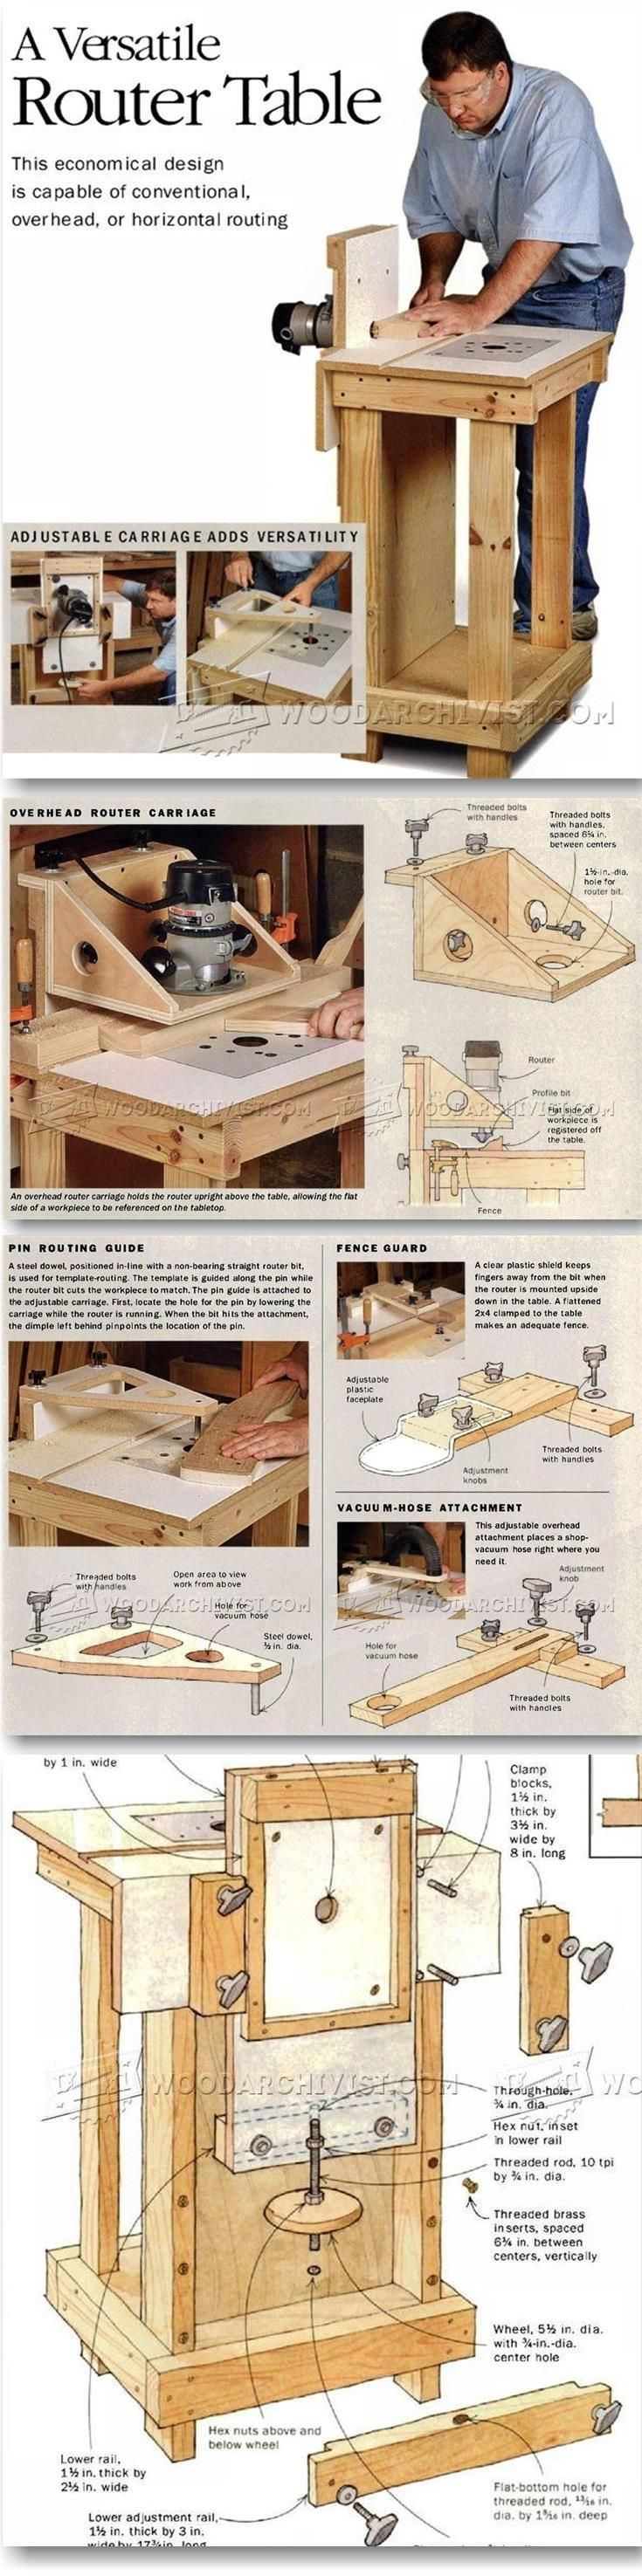 Mobile router table plans - Horizontal Router Table Plans Router Tips Jigs And Fixtures Http